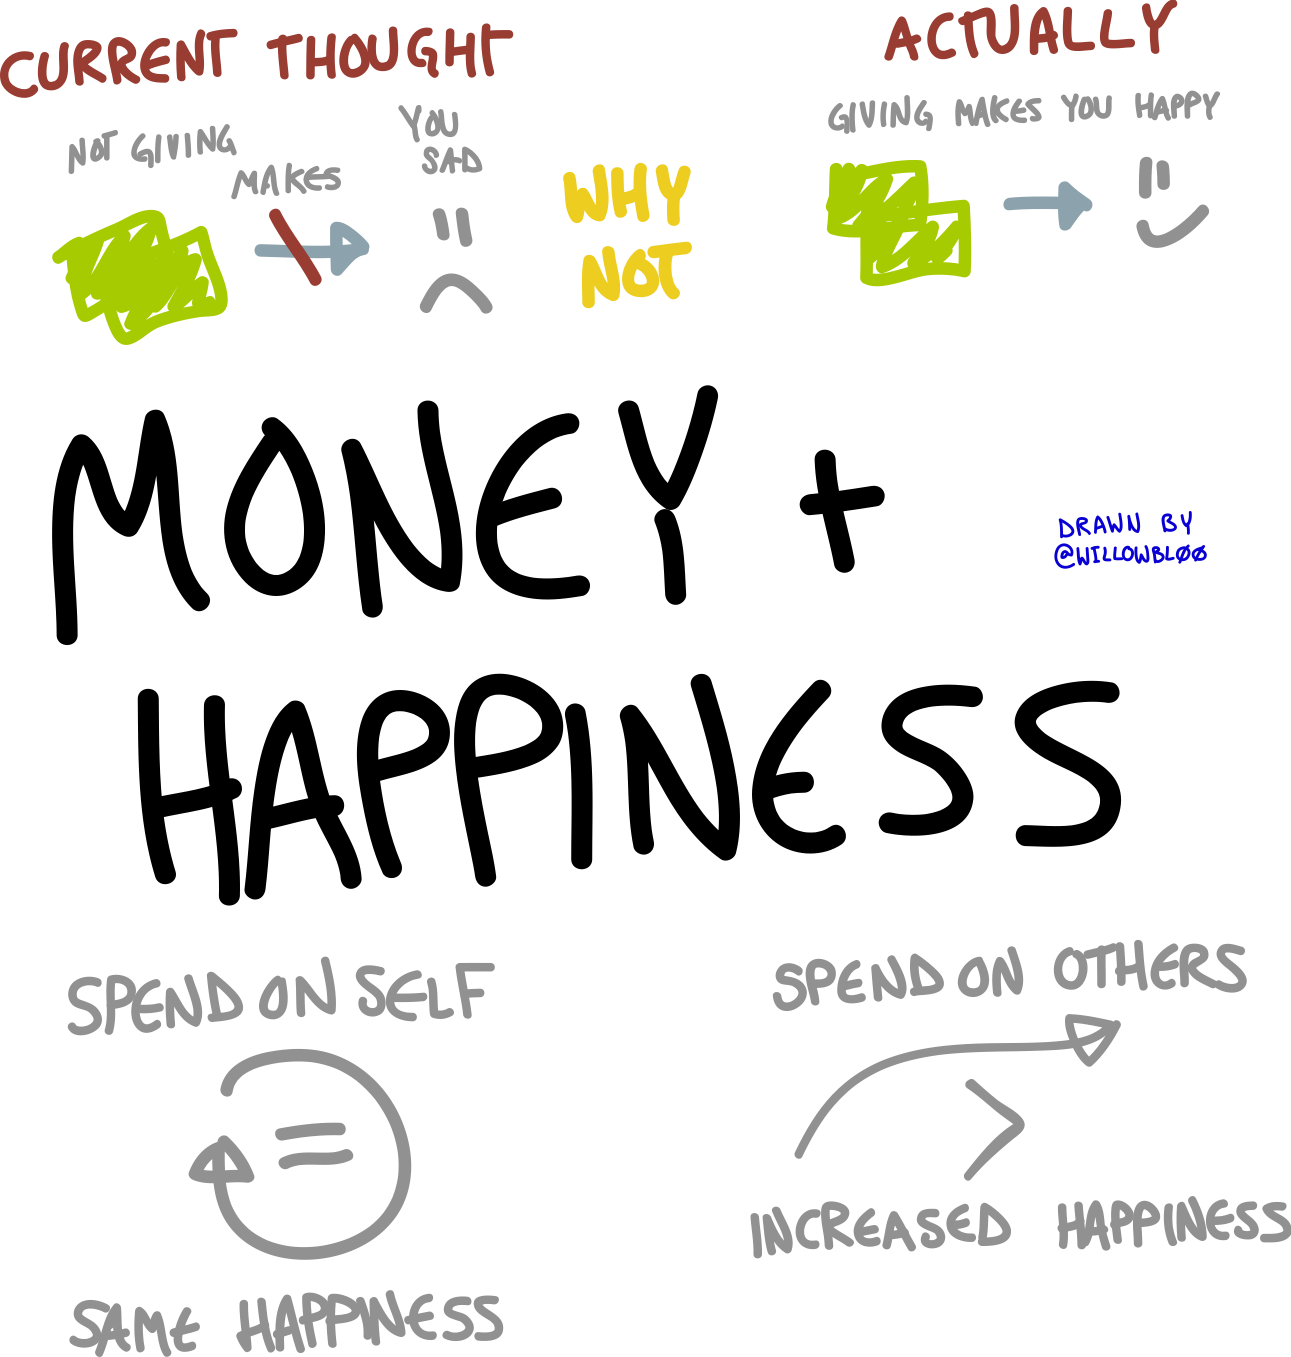 """money and happiness """"money is an opportunity for happiness, but it is an opportunity that people routinely squander because the things they think will make them happy often don't,"""" says elizabeth w dunn, phd."""